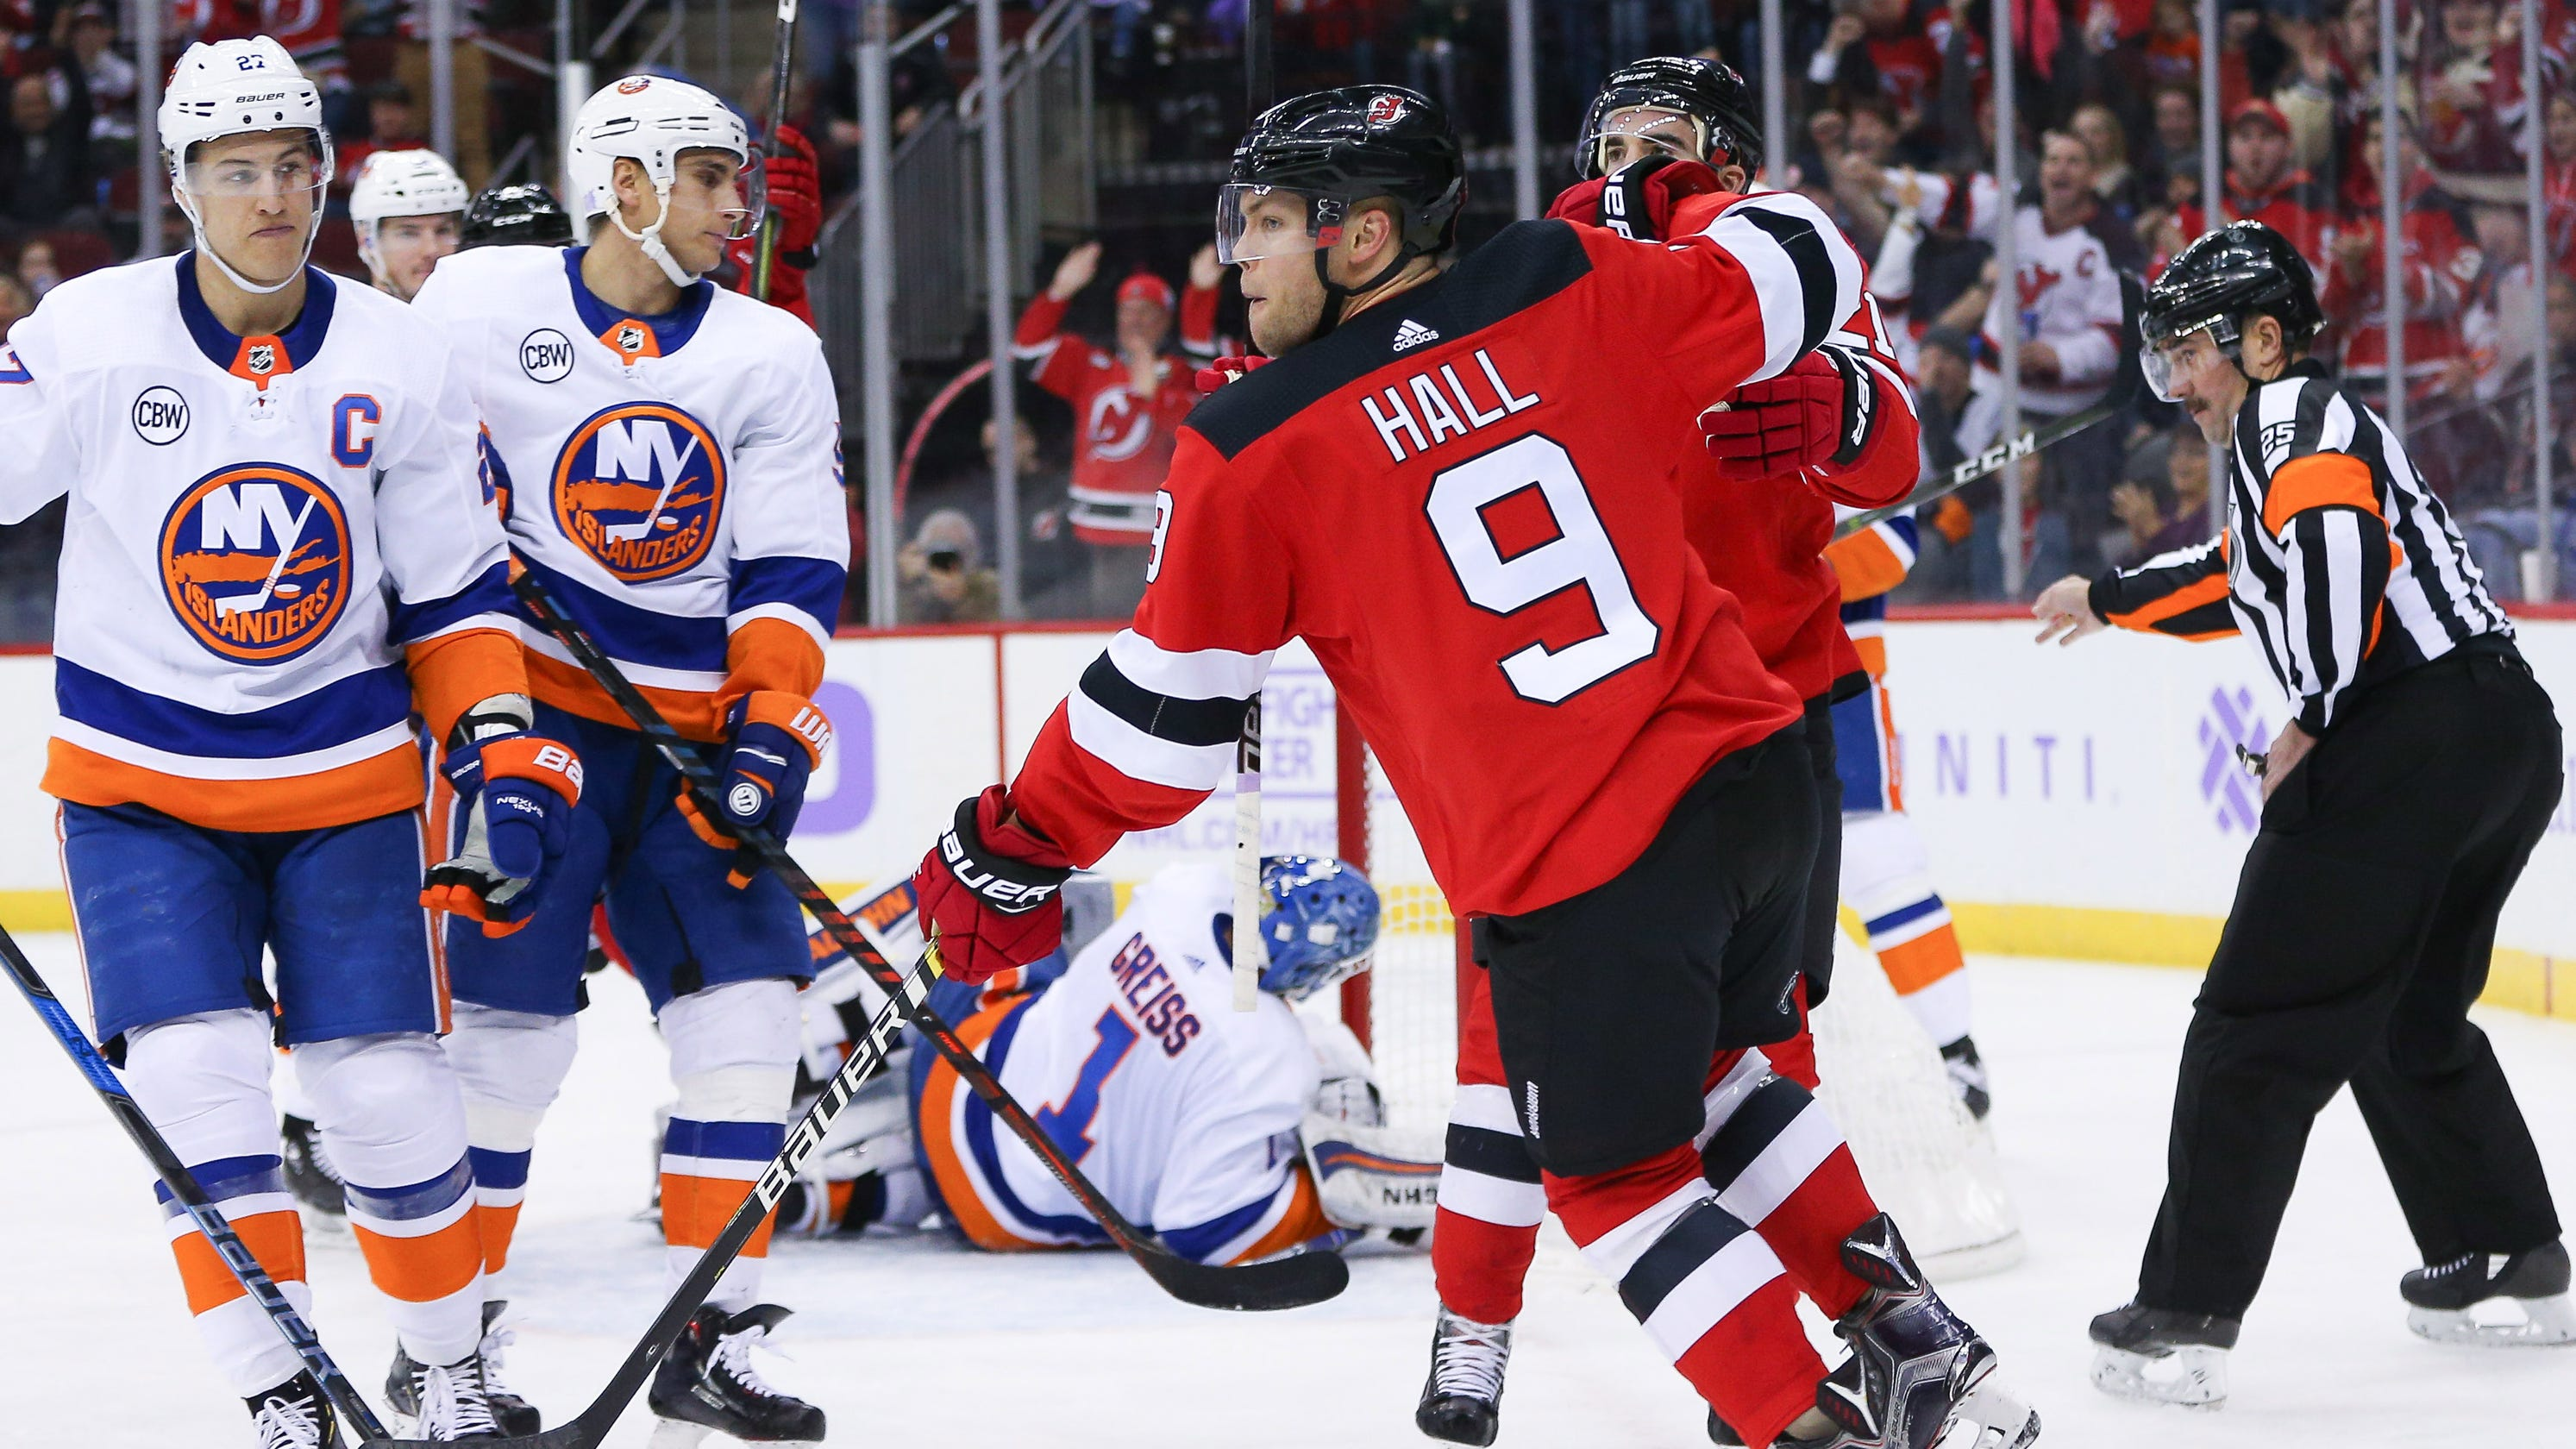 cheaper cb76b 087f5 Taylor Hall is 'invested' in NJ Devils, John Hynes says